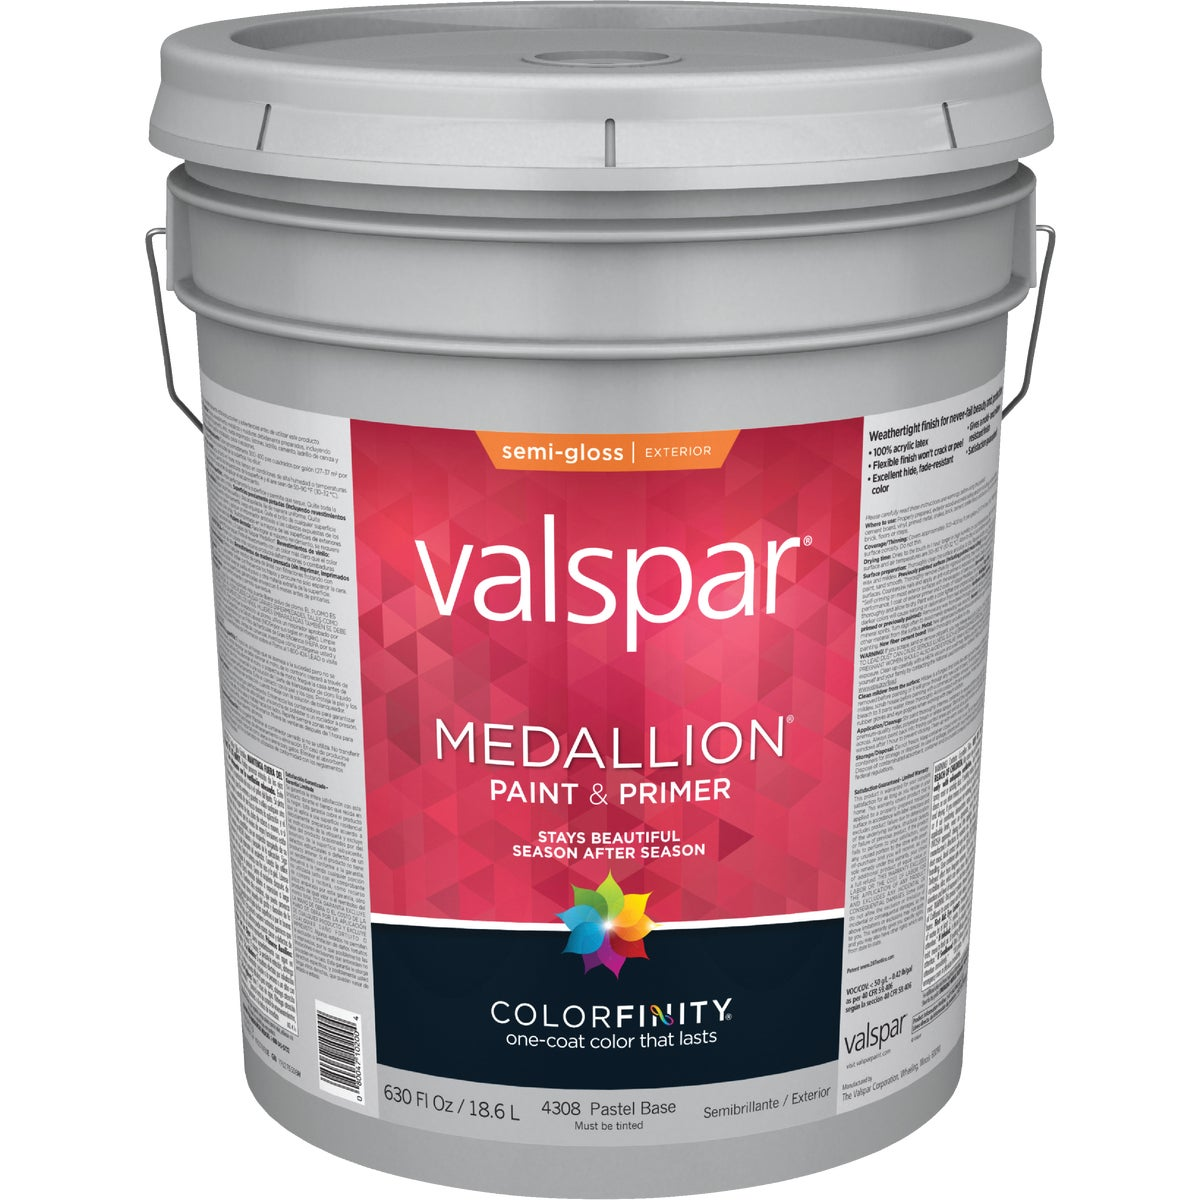 EXT S/G PASTEL BS PAINT - 027.0004308.008 by Valspar Corp